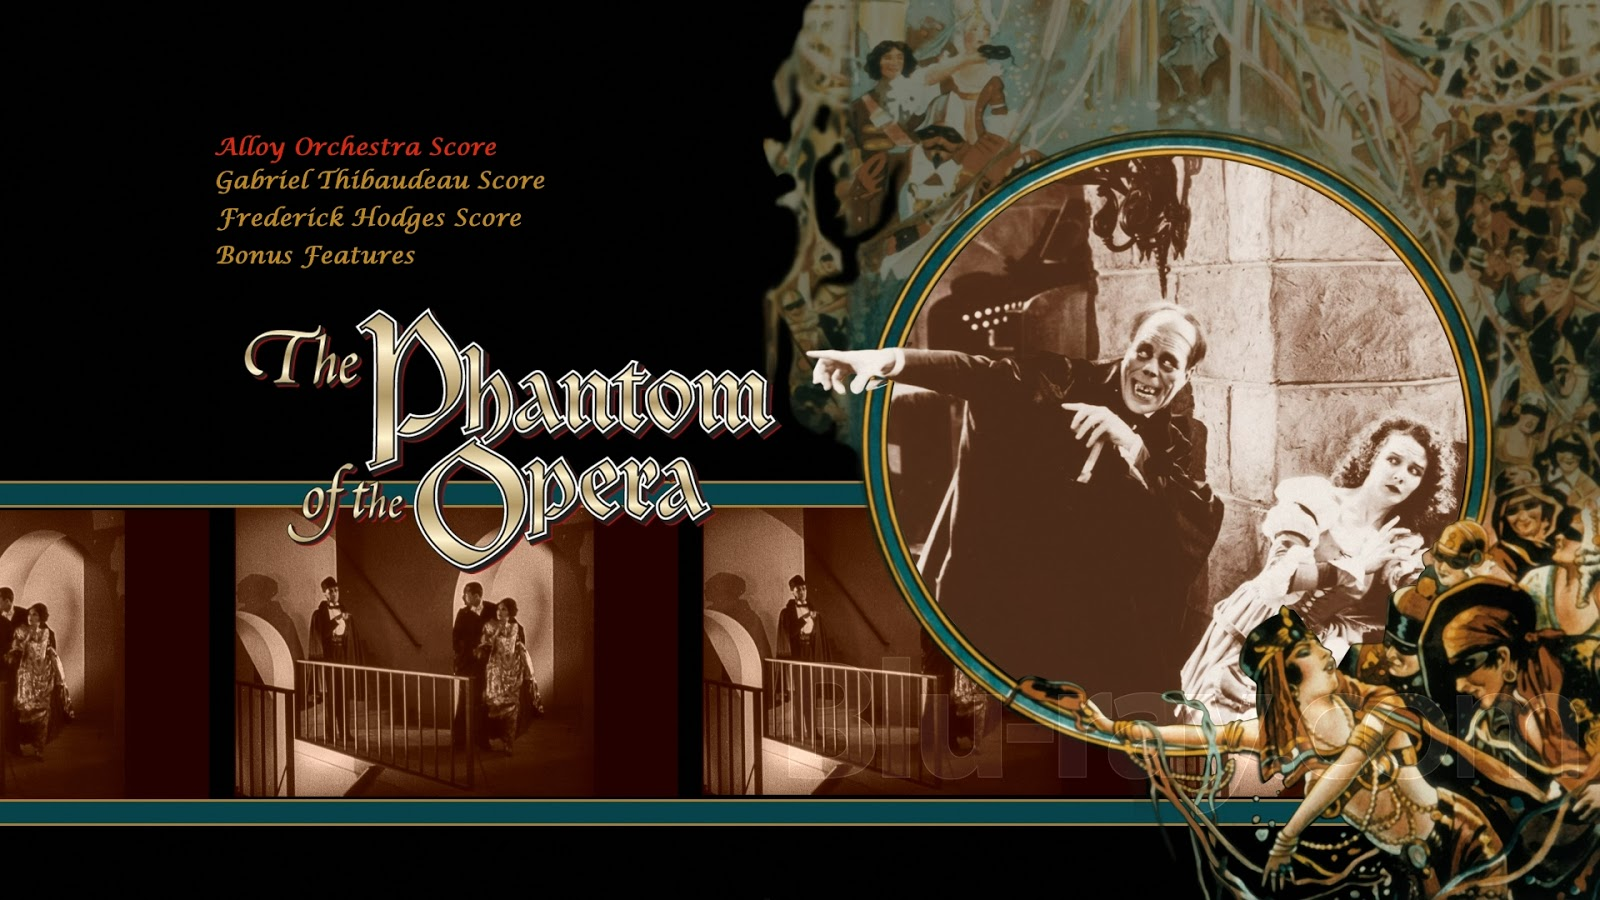 historical context of the remakes of the phantom of the opera essay Erik (also known as the phantom of the opera, commonly referred to as the phantom) is the title character from gaston leroux's novel le fantôme de l'opéra (1910), best known to english speakers as the phantom of the opera.